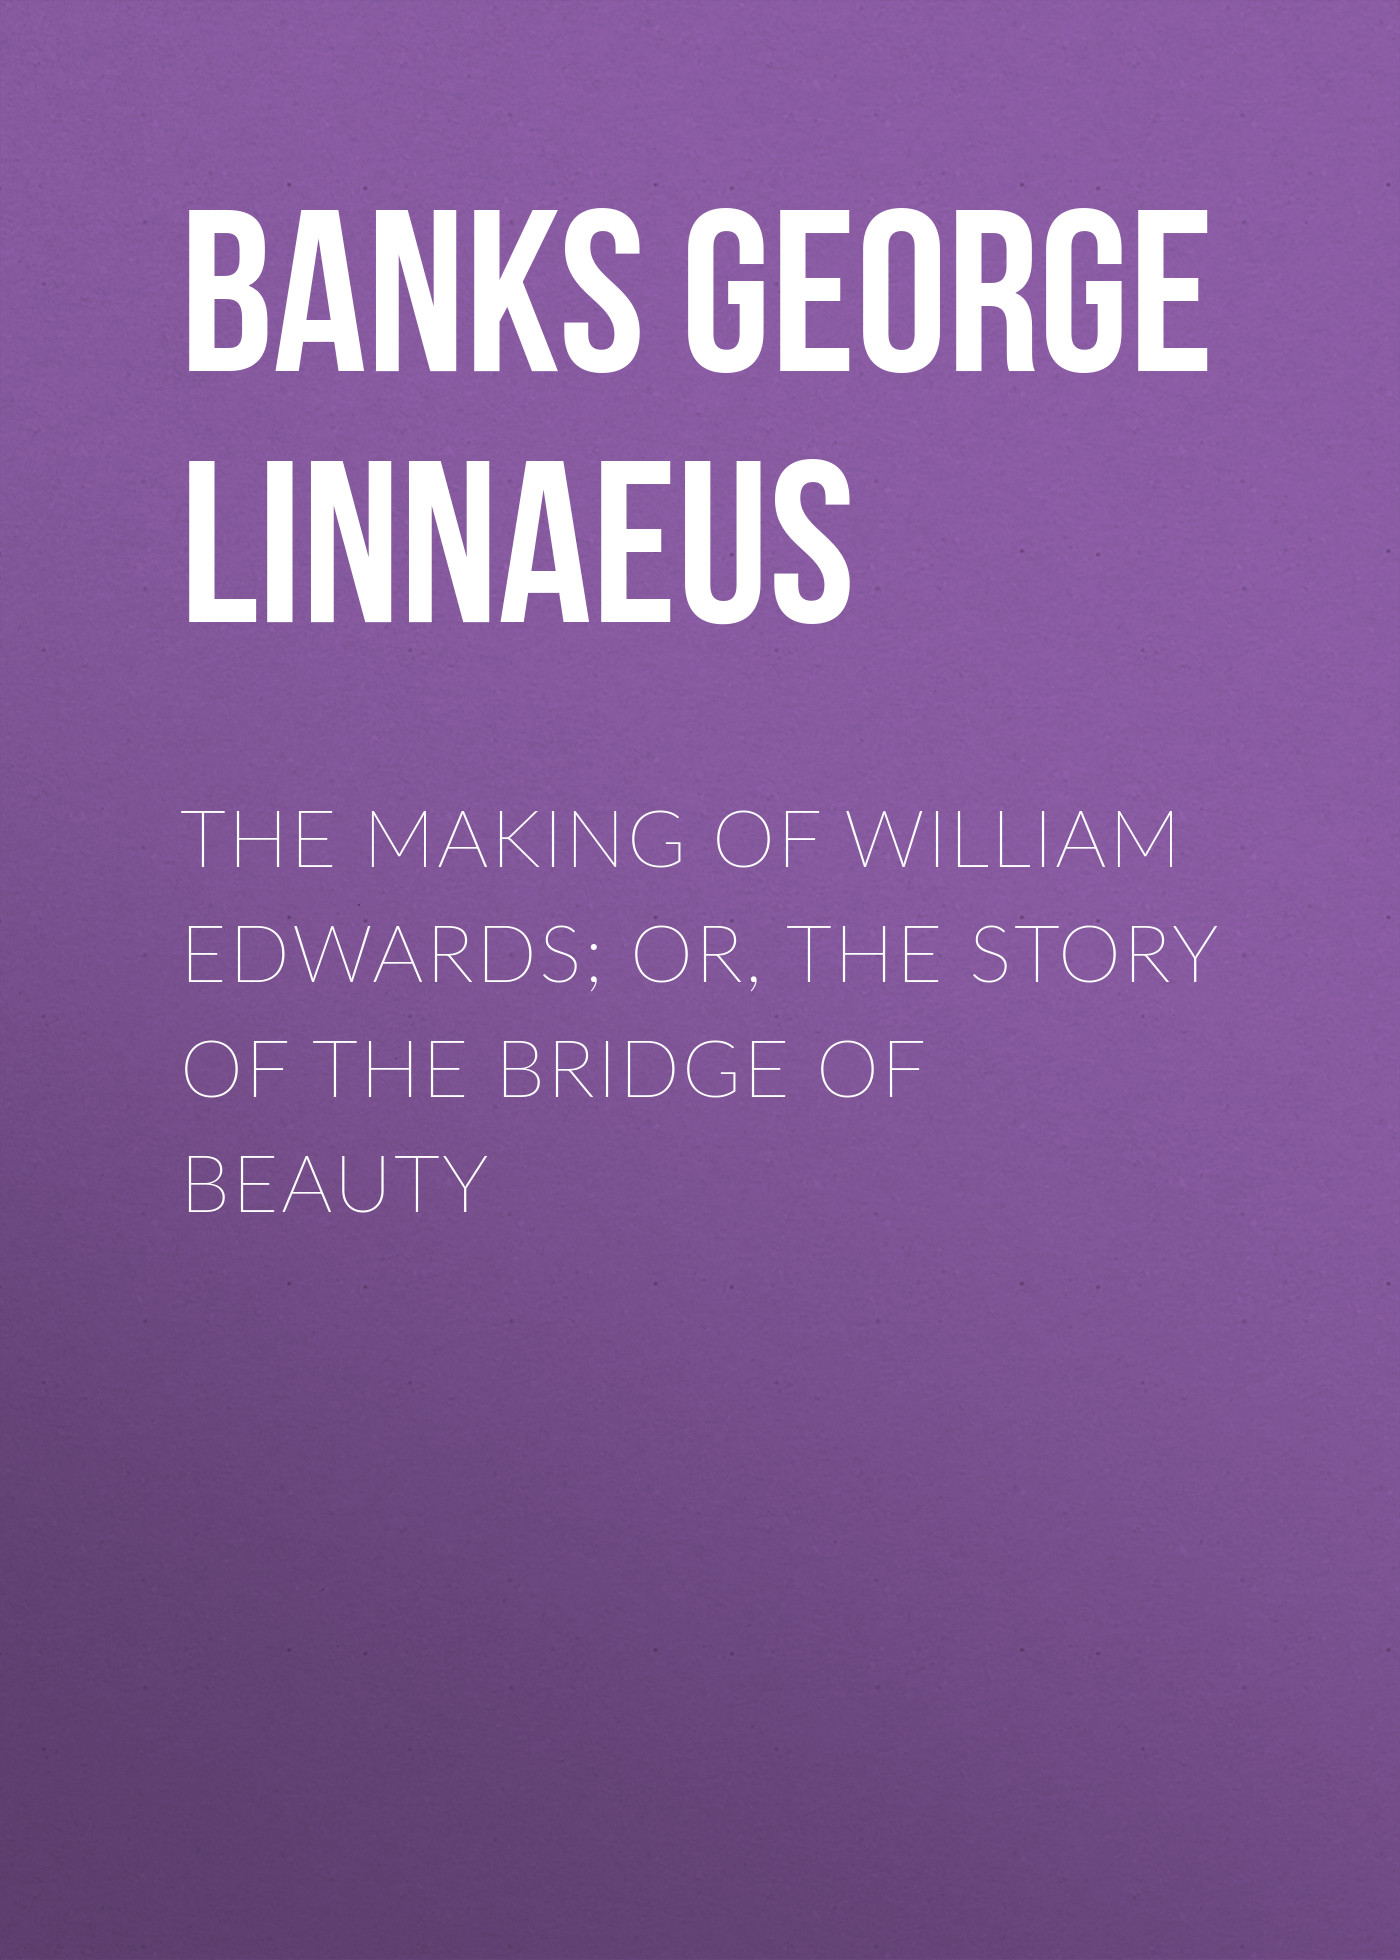 Banks George Linnaeus The Making of William Edwards; or, The Story of the Bridge of Beauty muriel barbier the story of lingerie